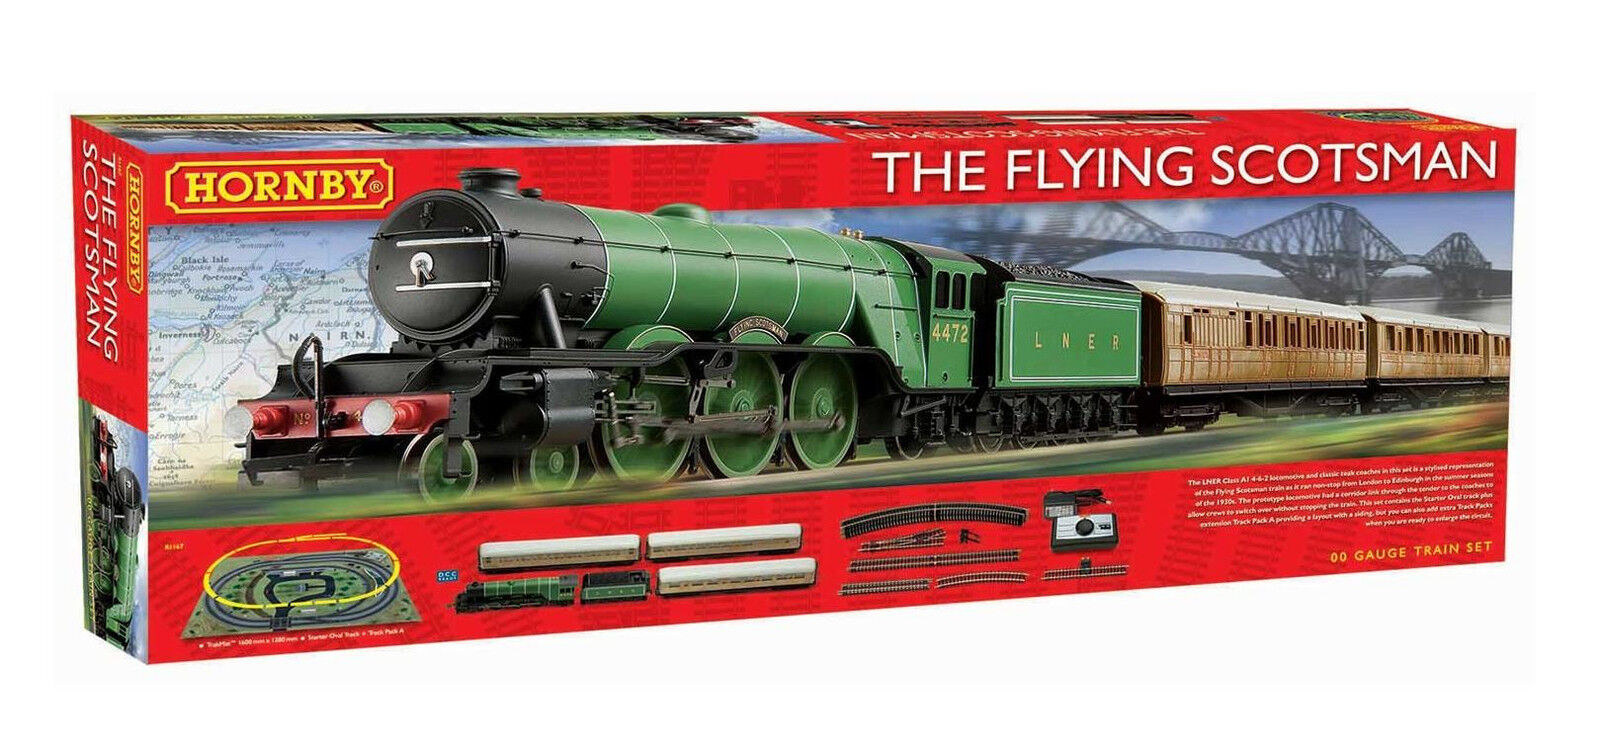 Model Railroads & Trains Passenger Cars 00 Gauge Hornby Tank Engine High Standard In Quality And Hygiene